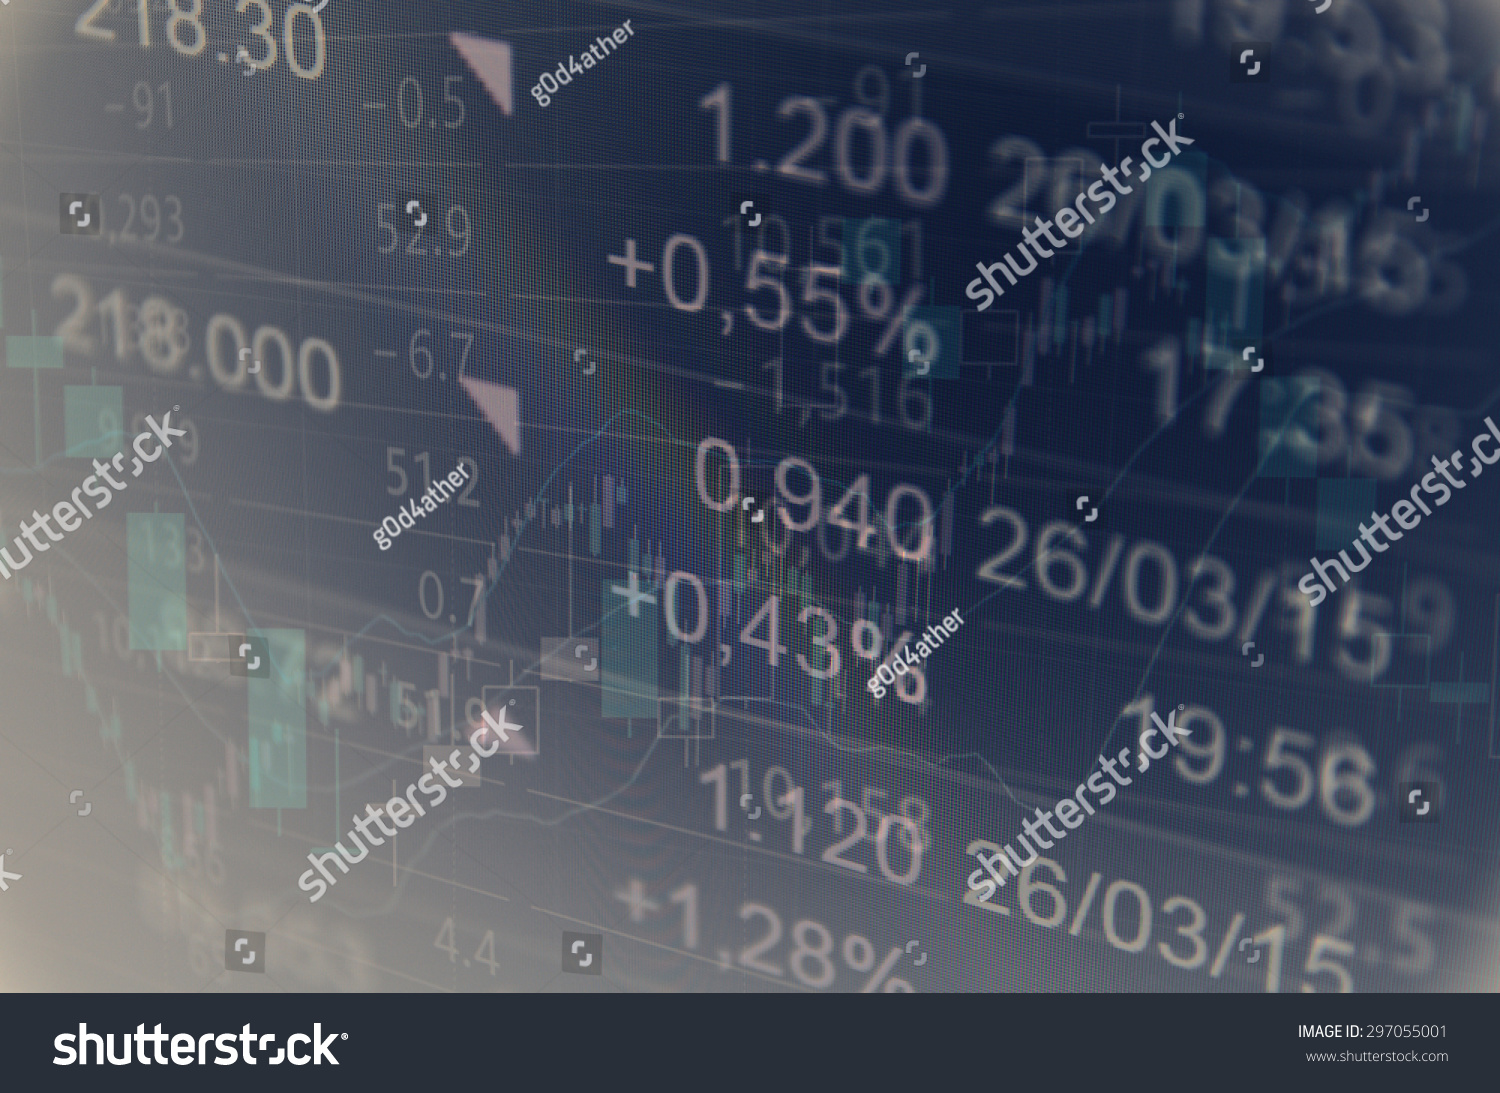 Financial data on monitor multiple exposure stock illustration multiple exposure shot of monitor with stock charts quotes and geenschuldenfo Image collections